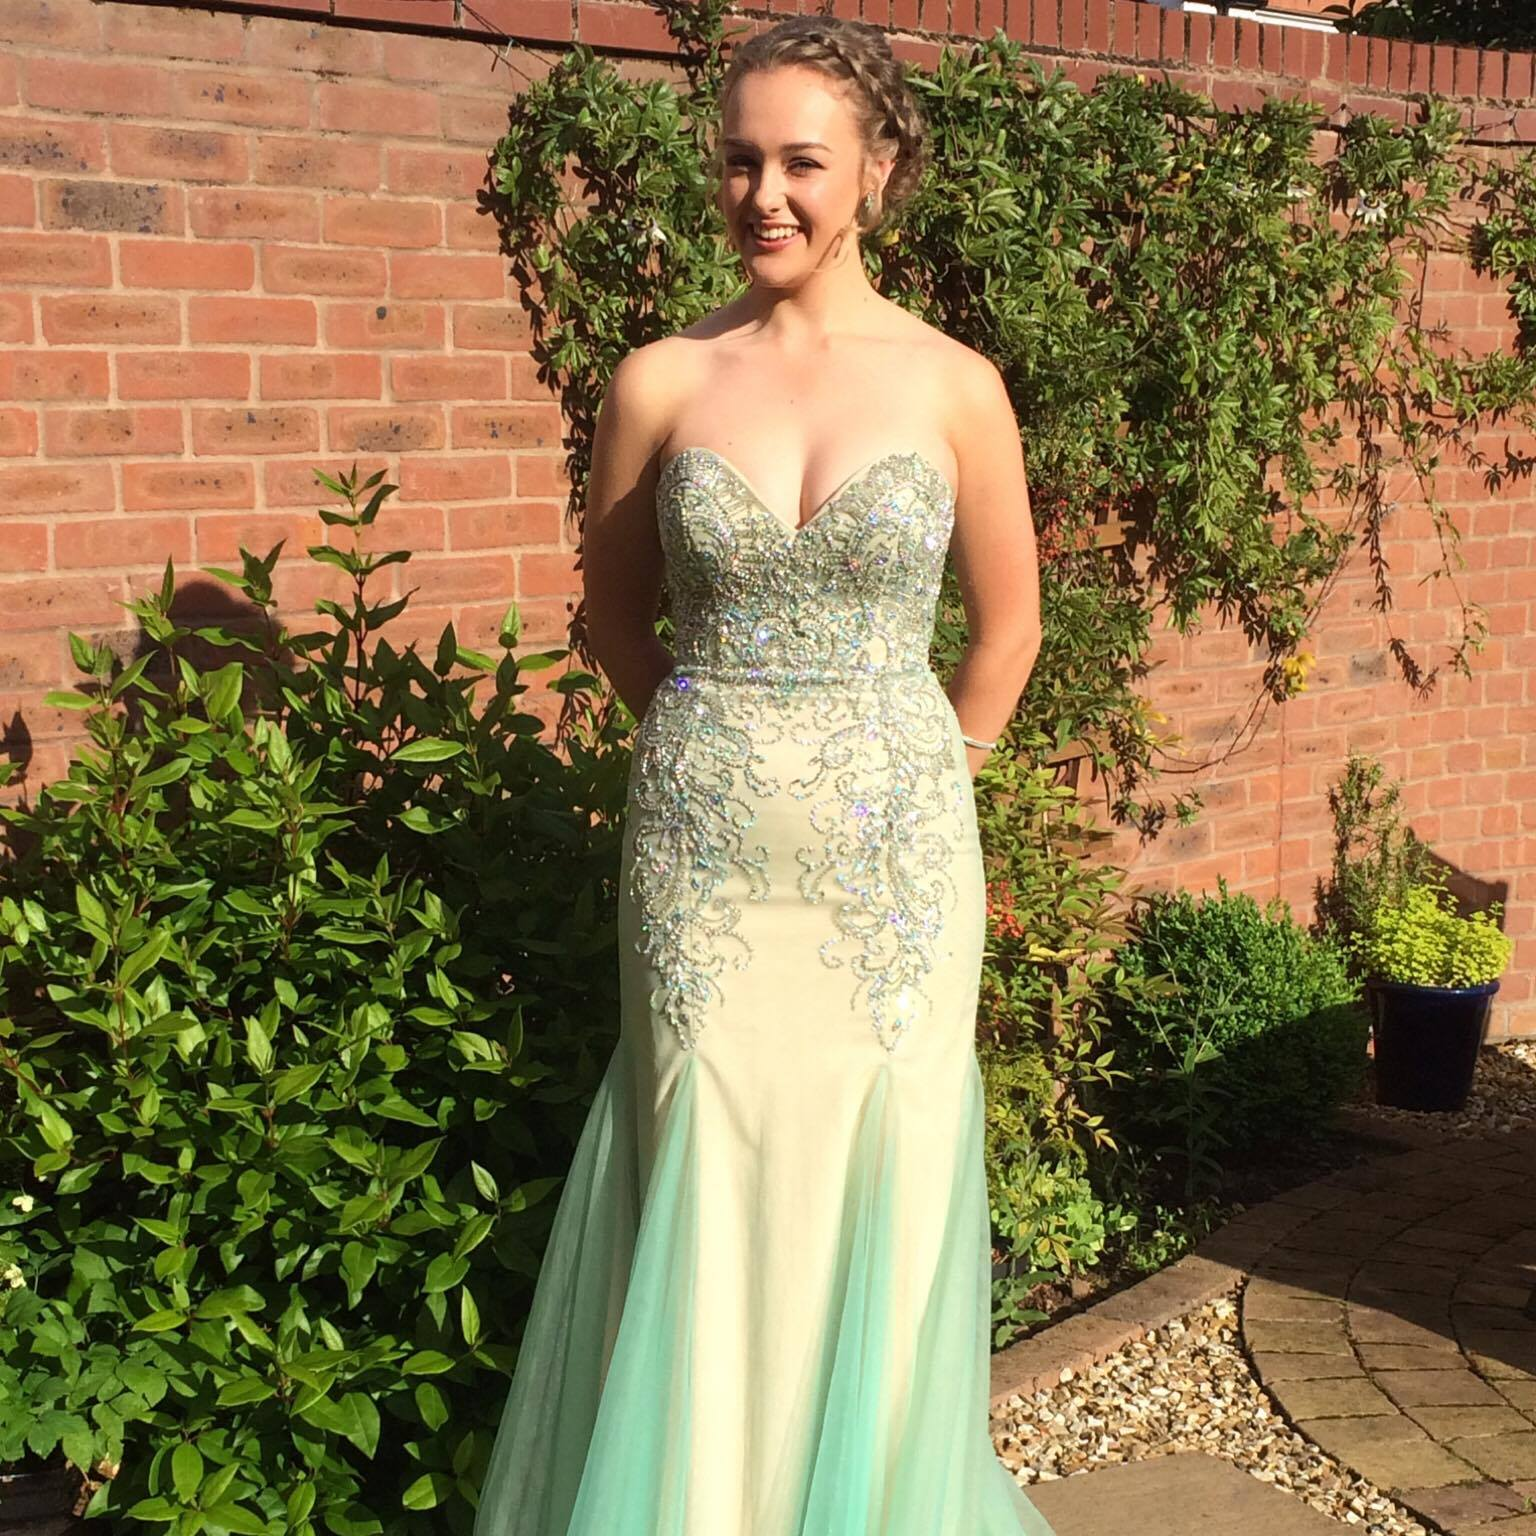 As promised a photo of Issy in her beautiful dress, she looked gorgeous and had a great night.